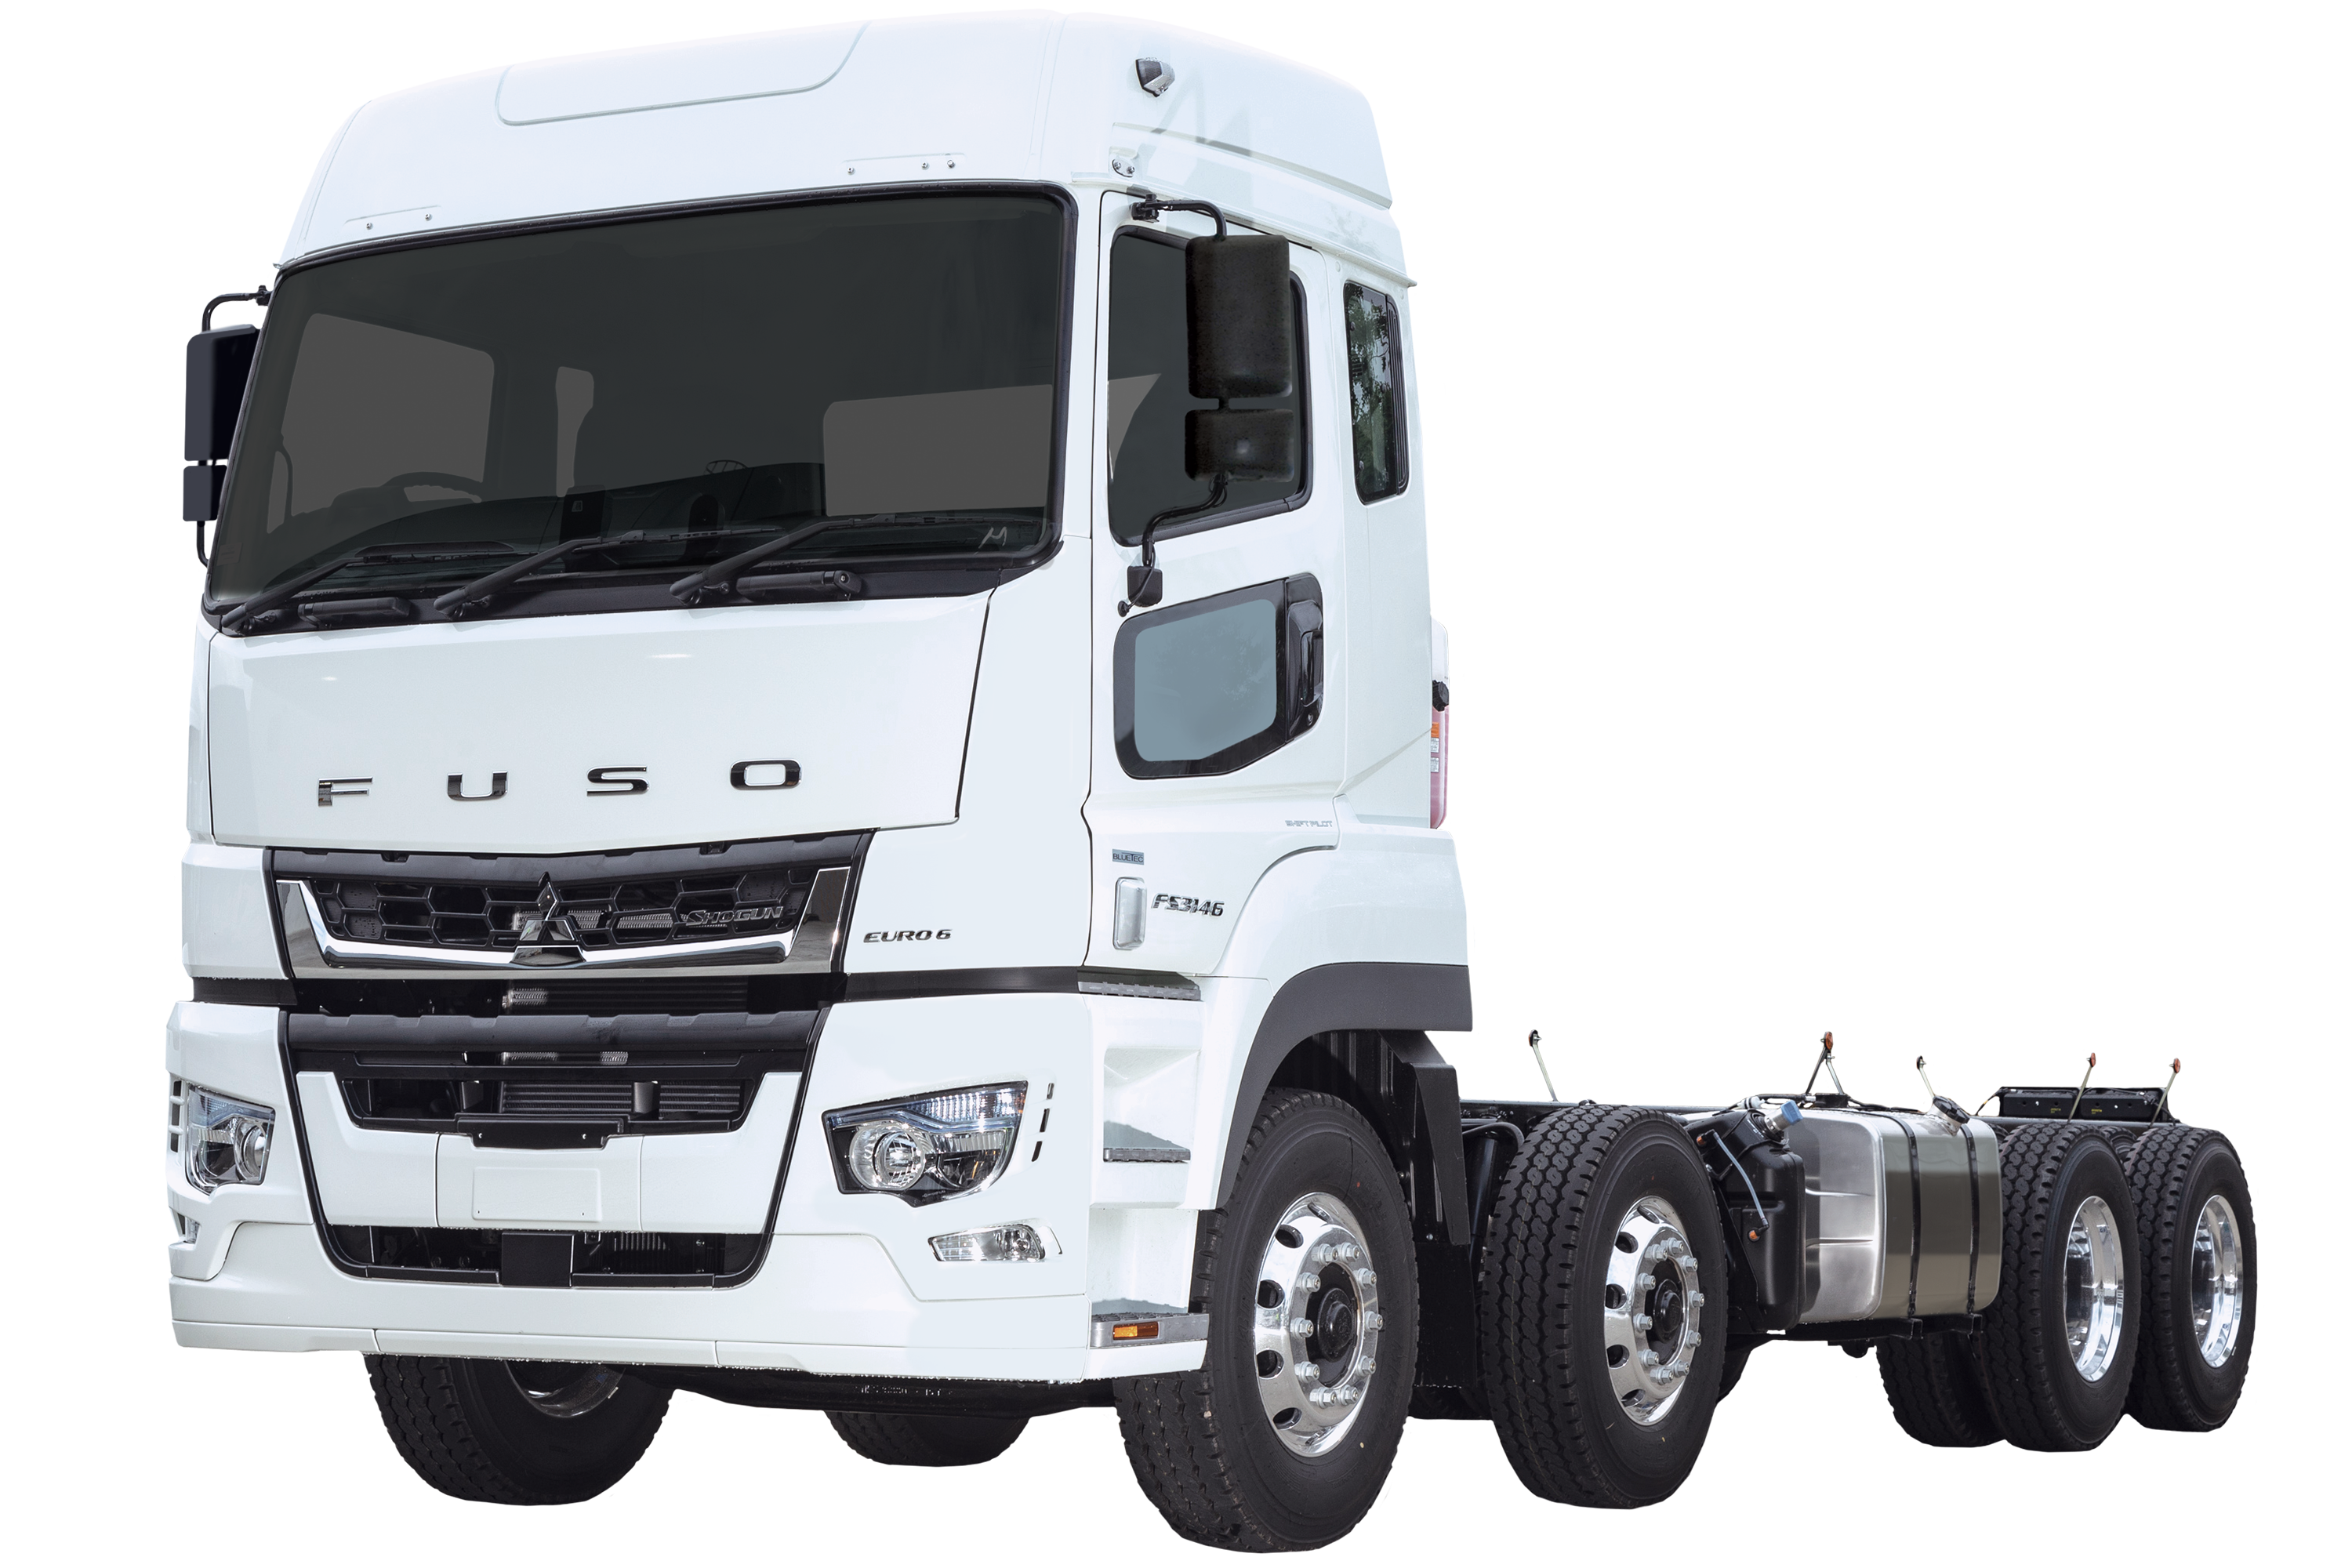 FUSO Shogun 8x4 trucks for sale NZ